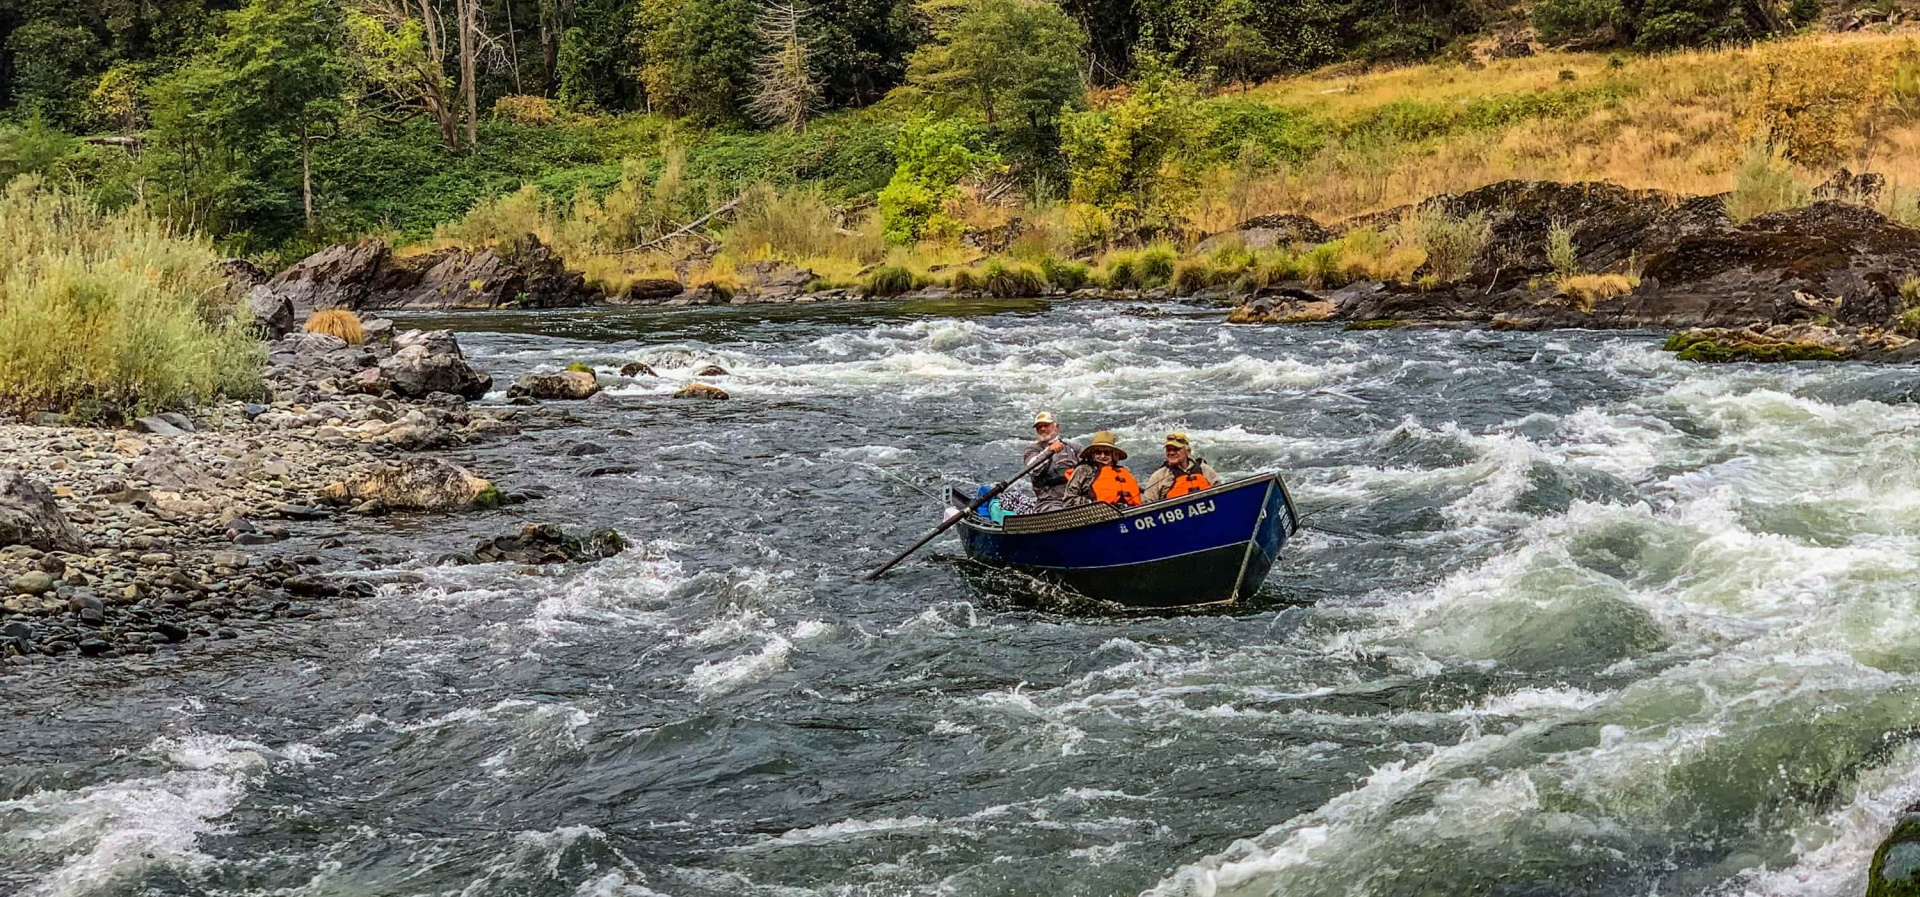 Rogue river drift boat at horse shoe bend rapid